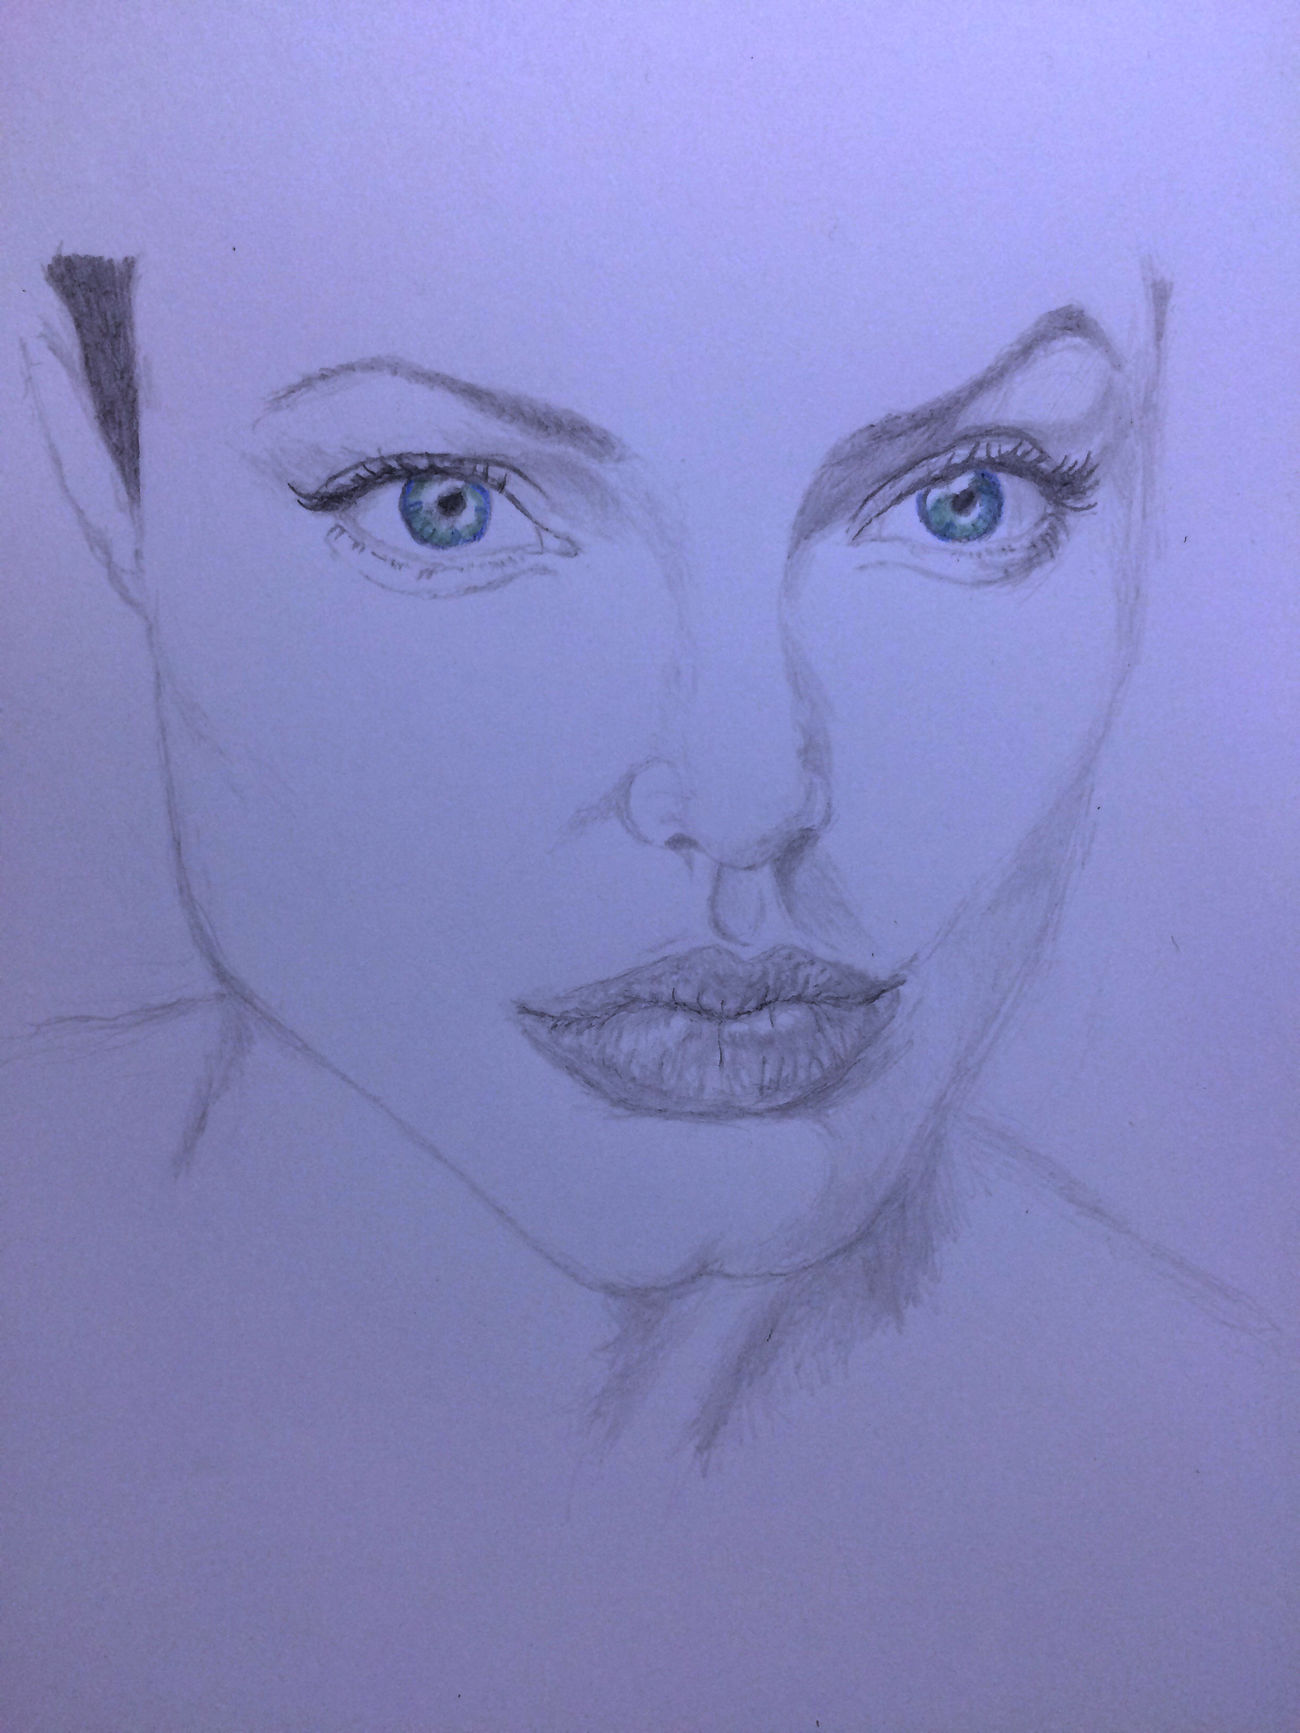 Drawing ArtWork Hello World Art, Drawing, Creativity Angelina Jolie アンジー アンジェリーナジョリー